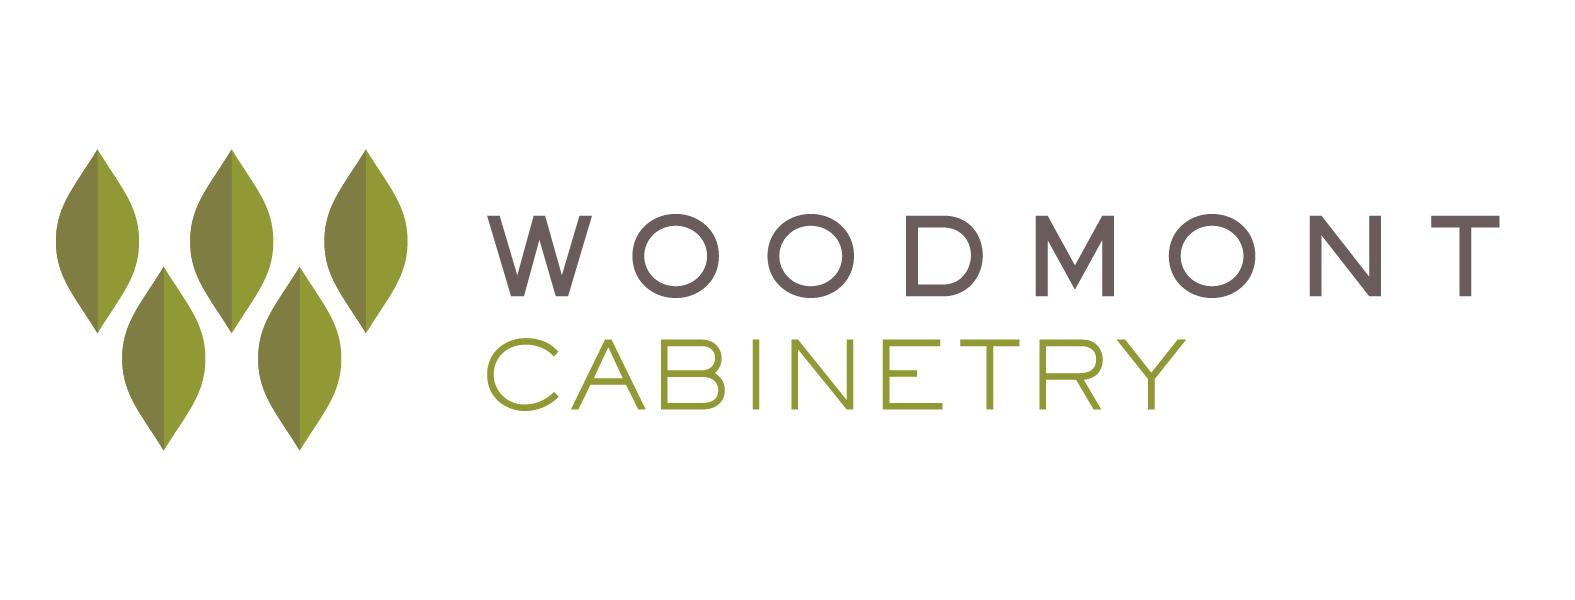 Woodmont Cabinetry available at Swartz Kitchens and Baths